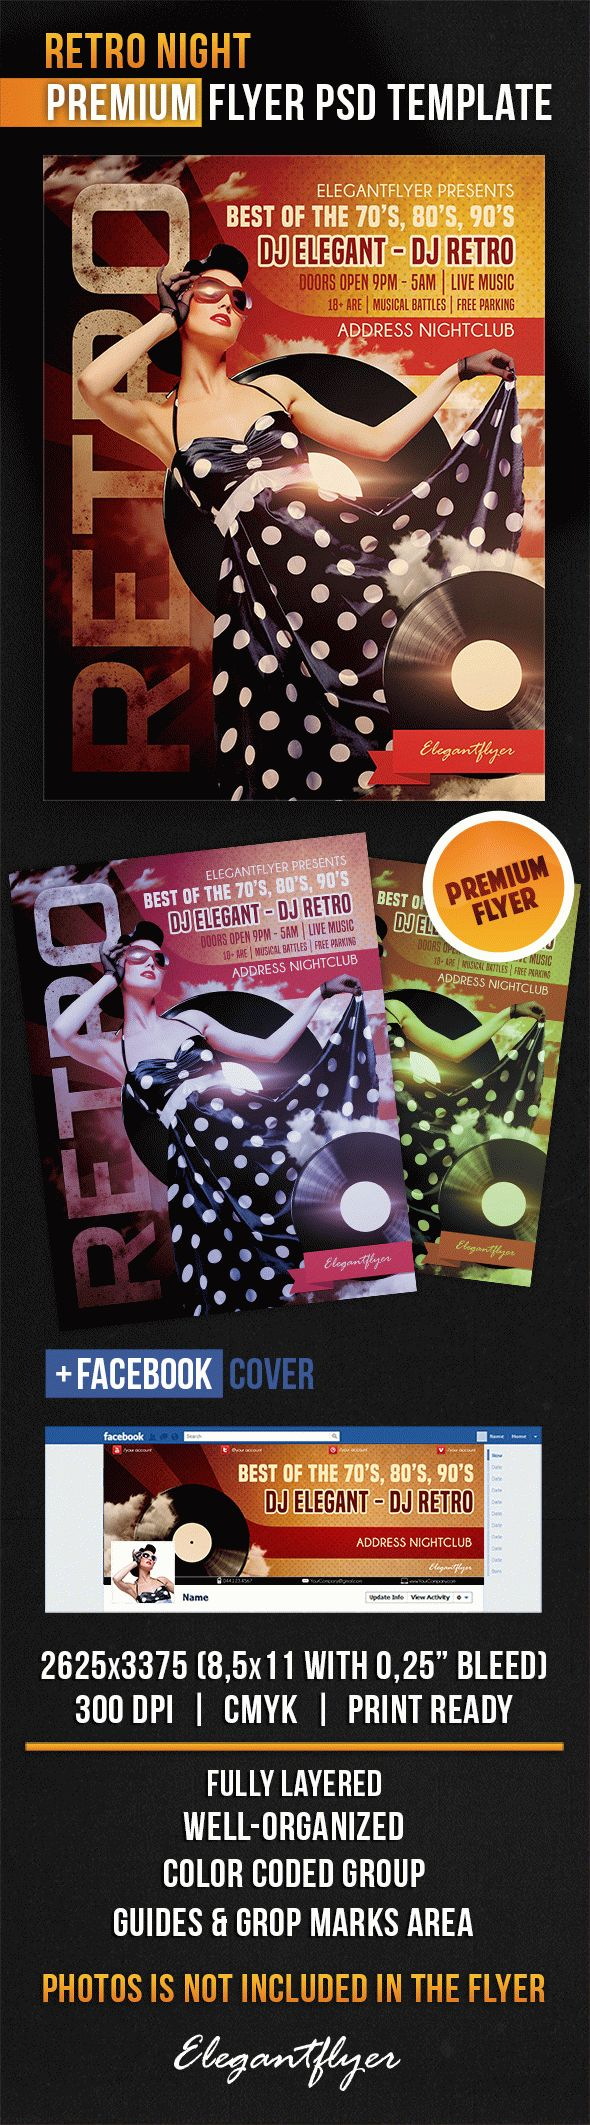 Retro Night – Flyer PSD Template + Facebook Cover